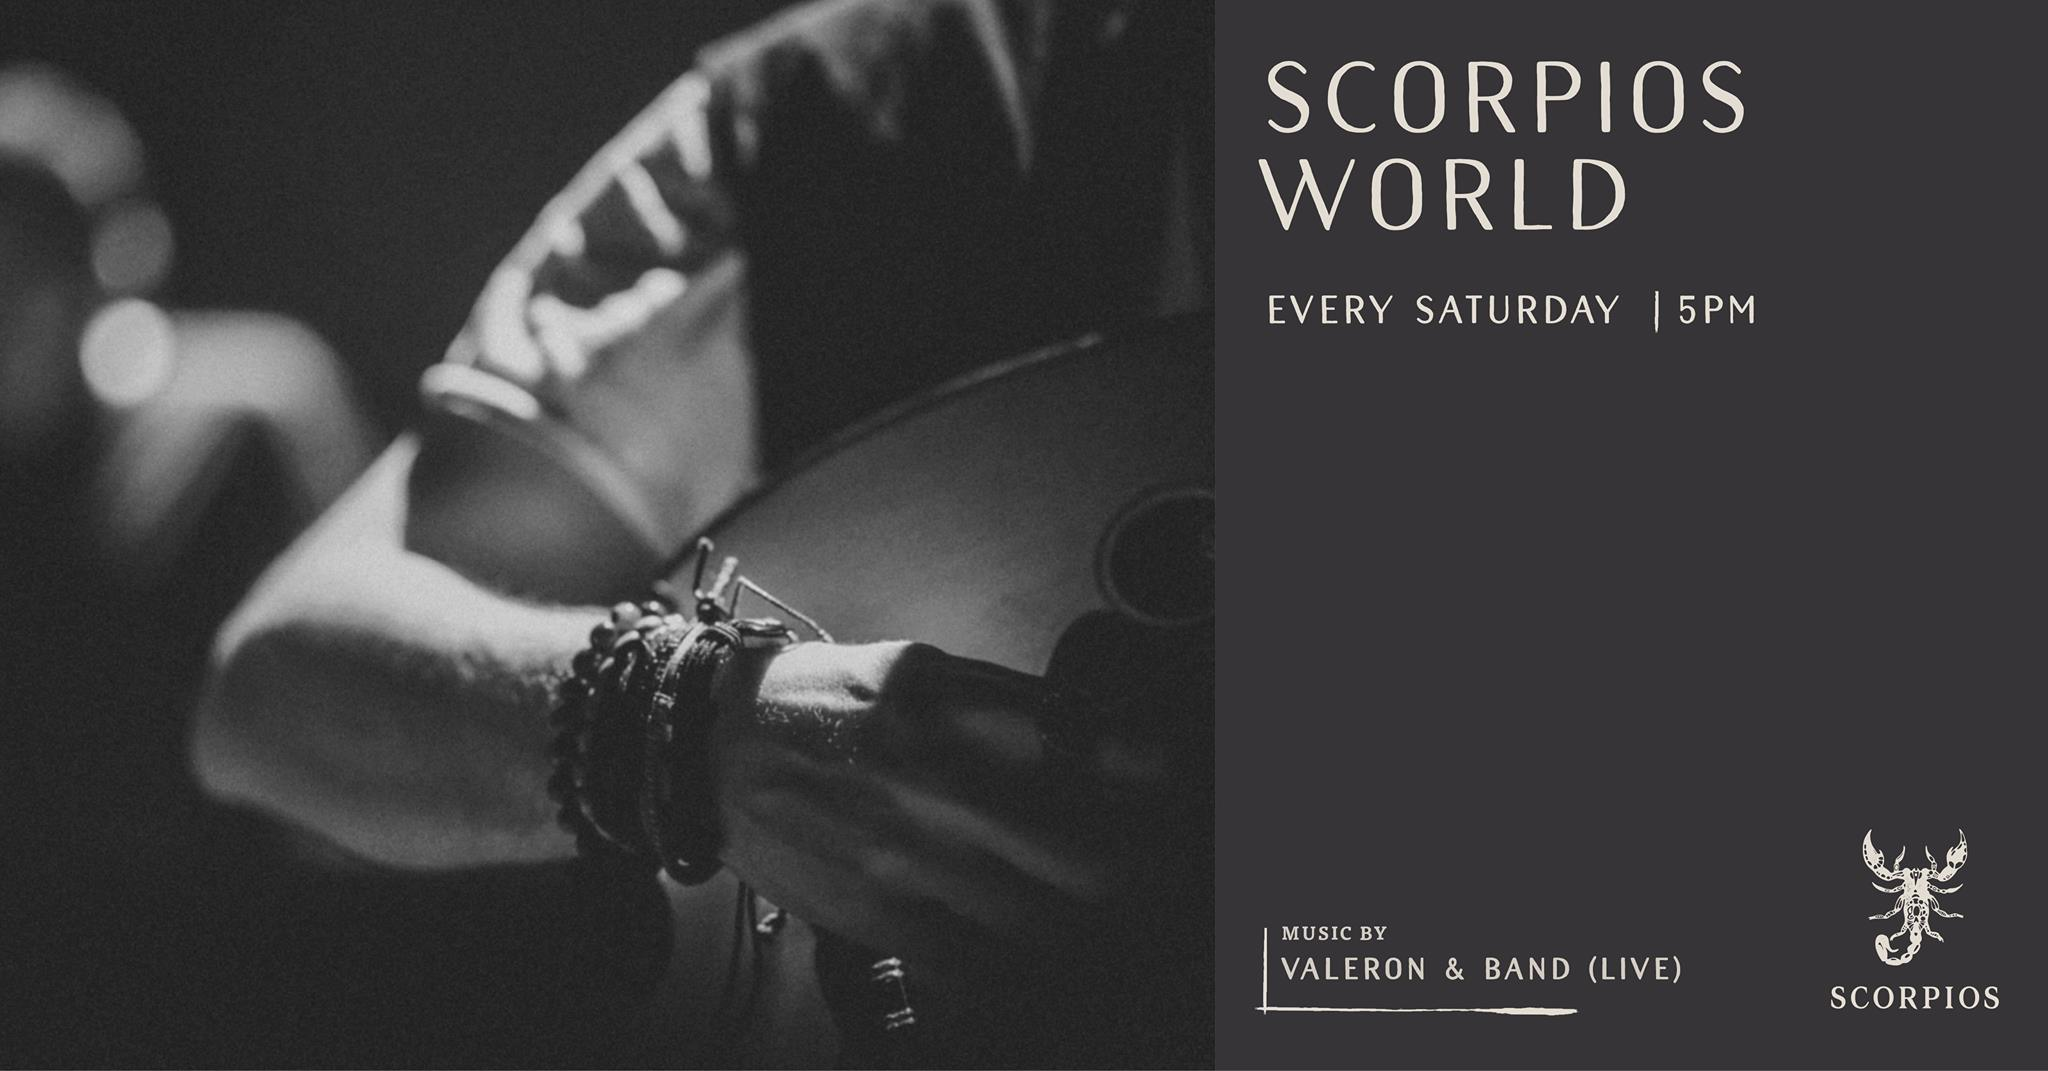 """SCORPIOS"" WORLD WITH VALERON & BAND (LIVE)"